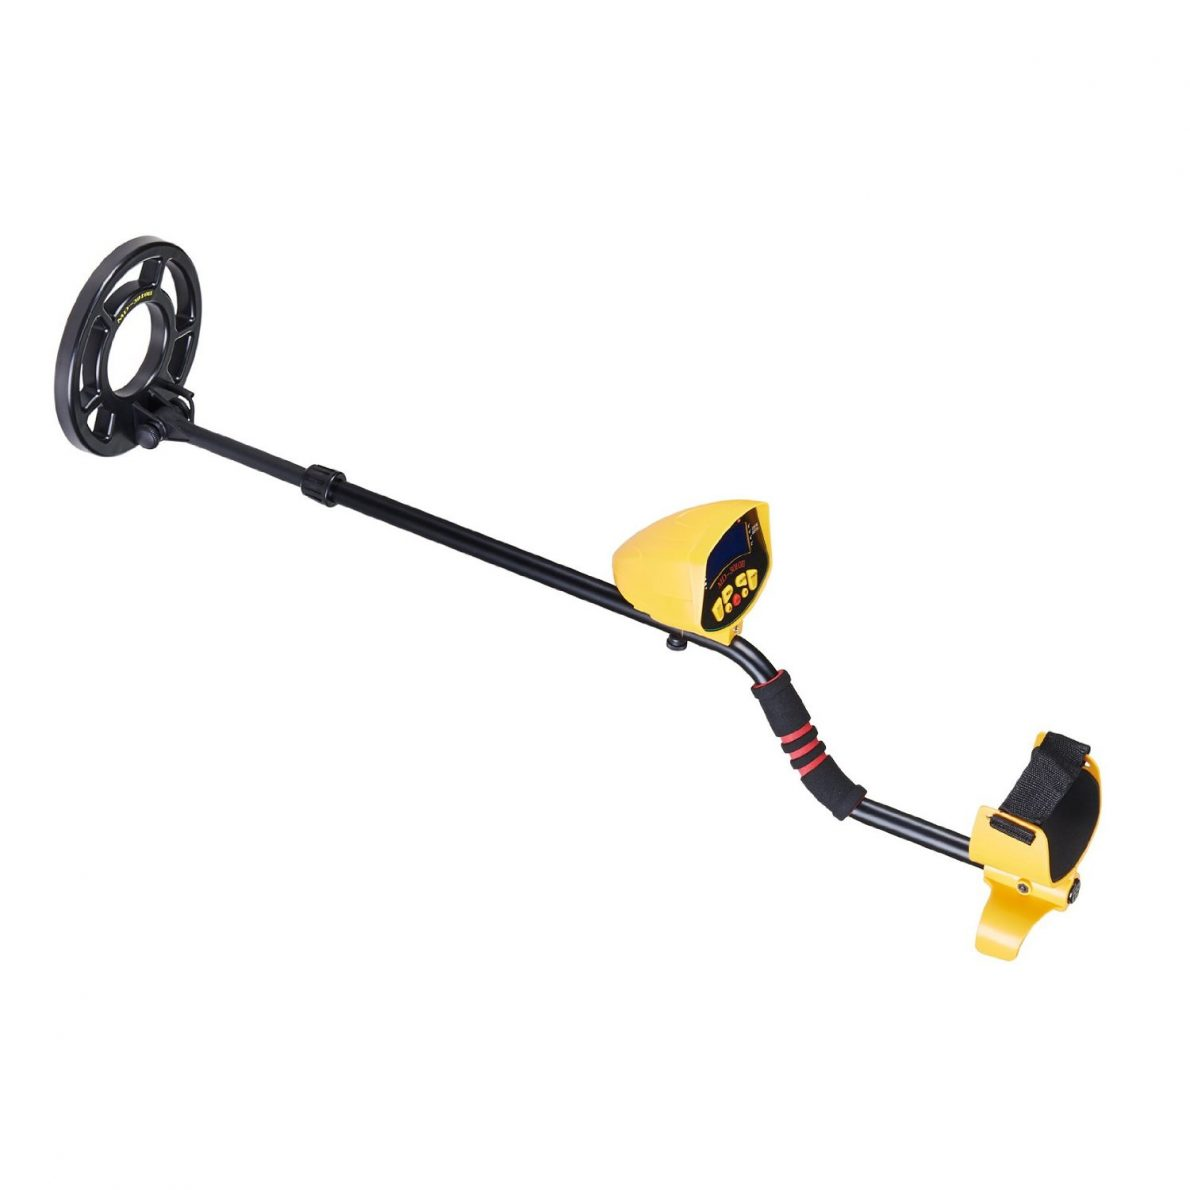 Tek Motion MD-3010II Metal Detector Review